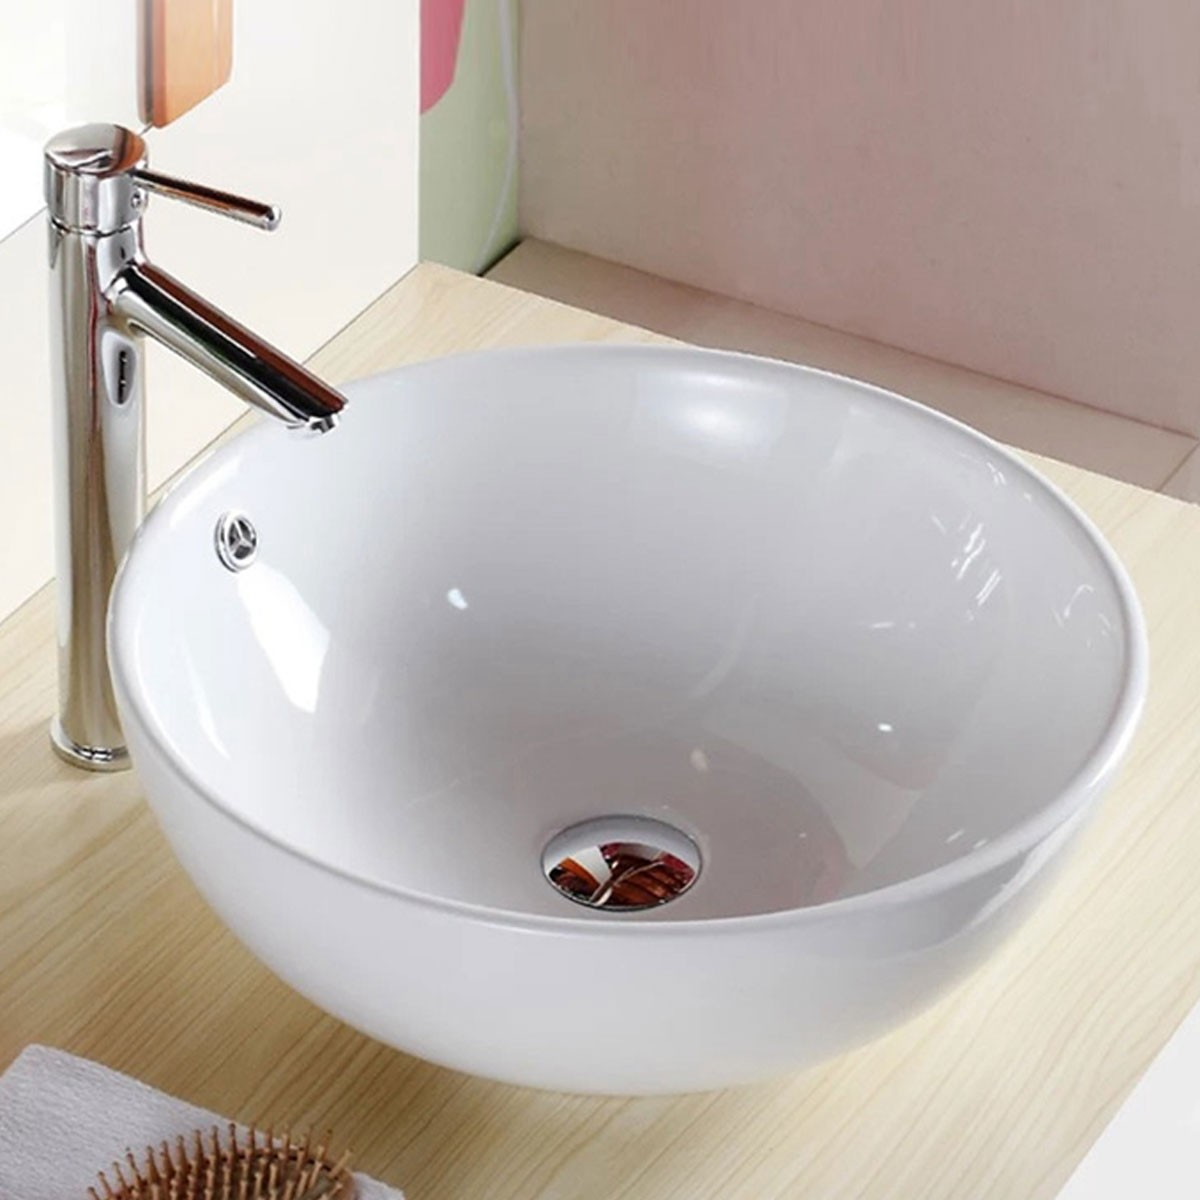 Decoraport White Round Ceramic Above Counter Basin (CL-1027)